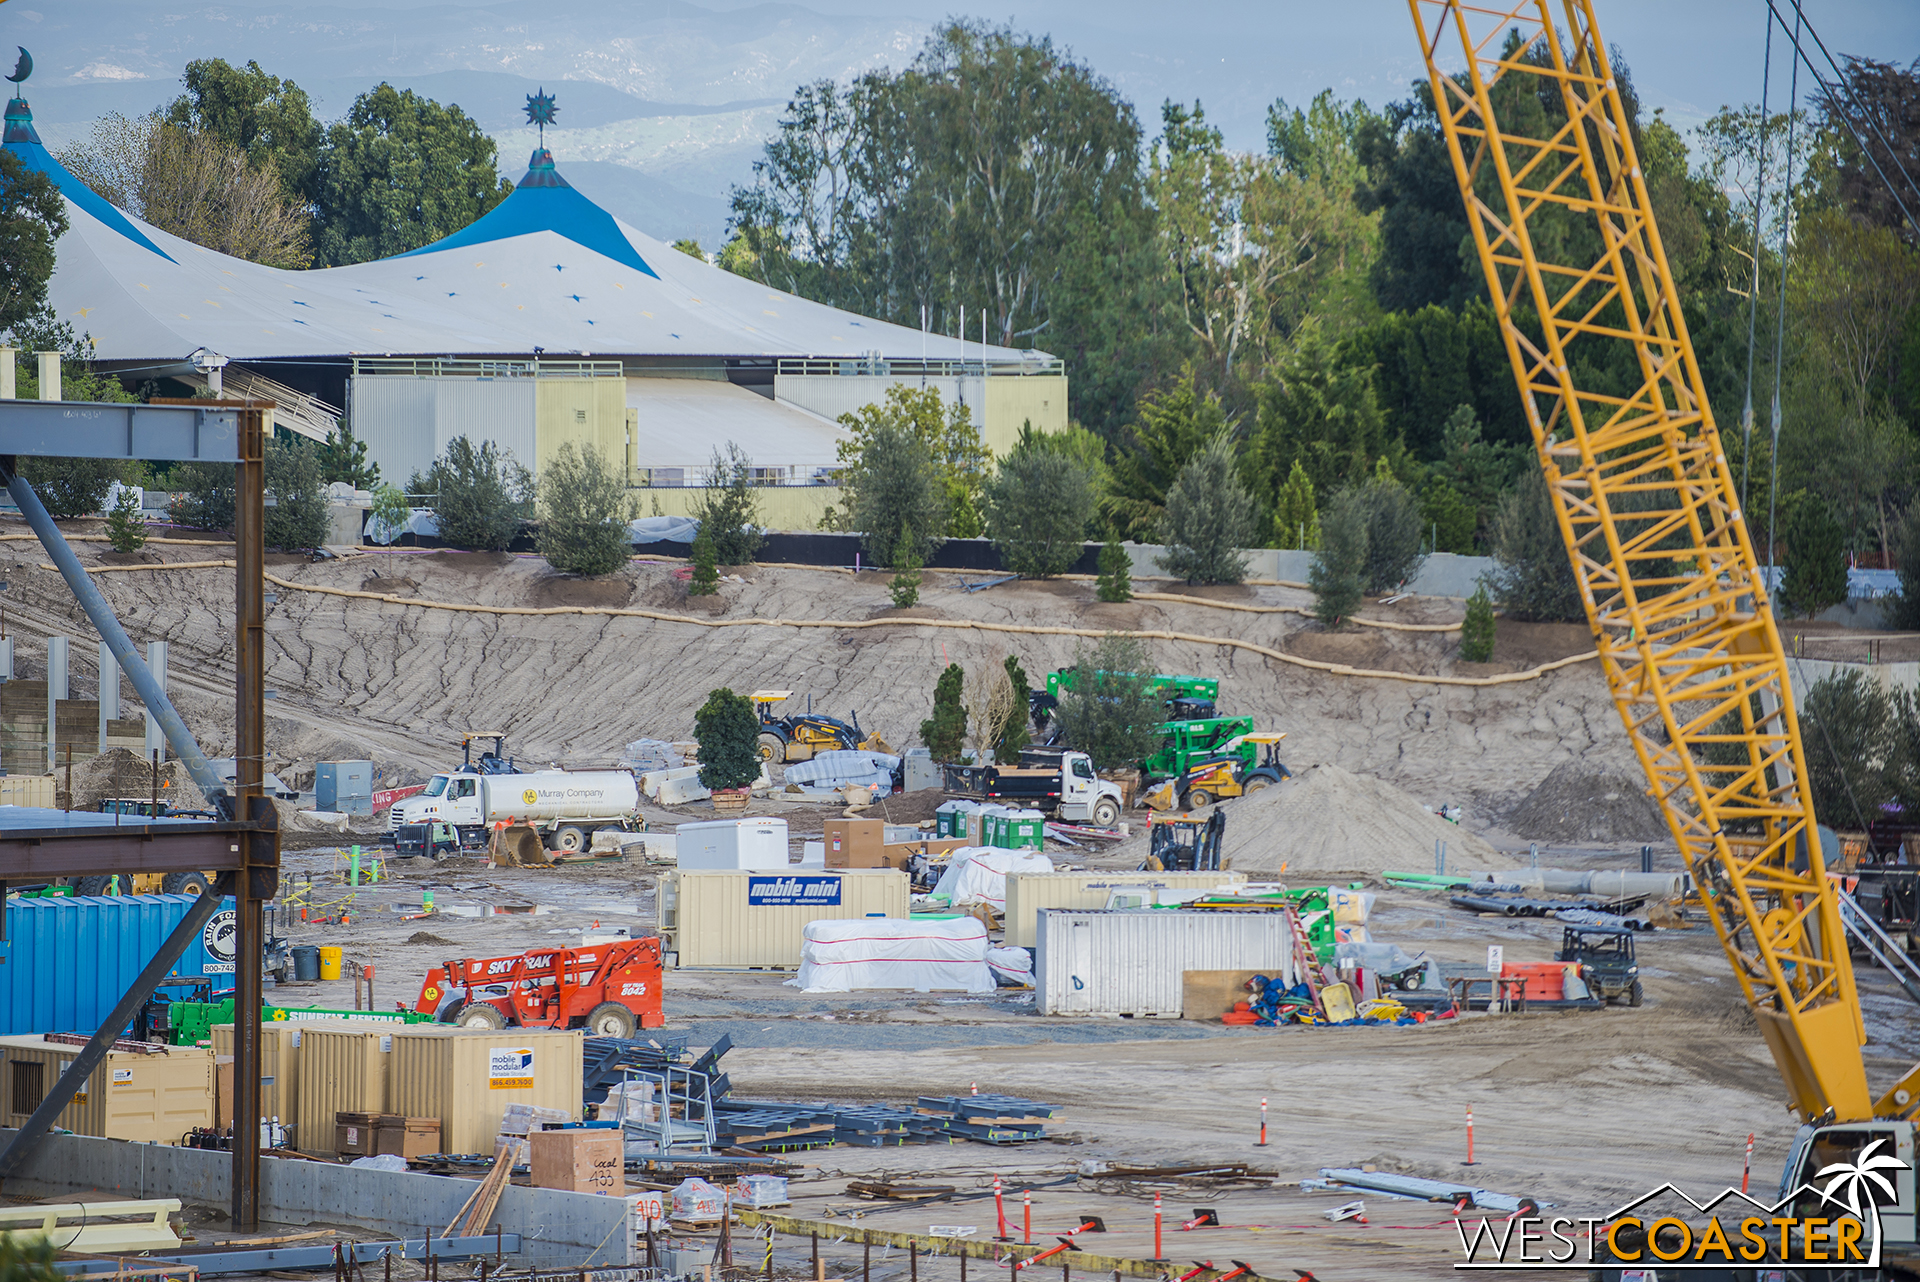 """So for anyone who might be concerned about how the existing lands transition into """"Star Wars"""" land, it's looking like they'll be taking that wilderness feel of Critter Country and Frontierland and smoothly transitioning that into this new outpost planet that's never been explored before."""